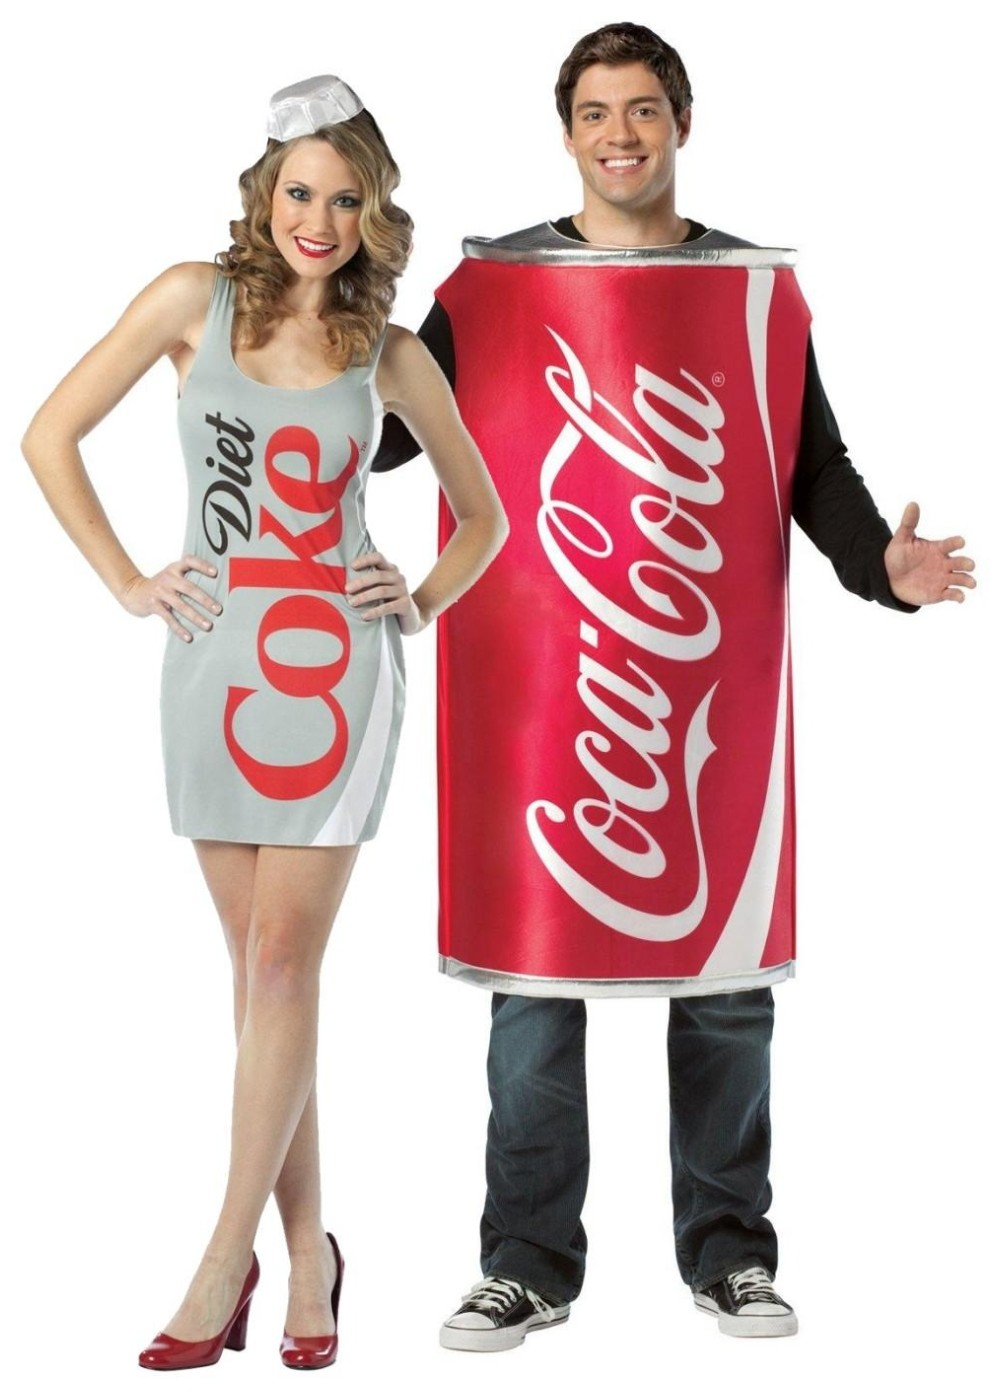 bceb0e262b8 Coke and Diet Coke Couples Costume - Food Costumes